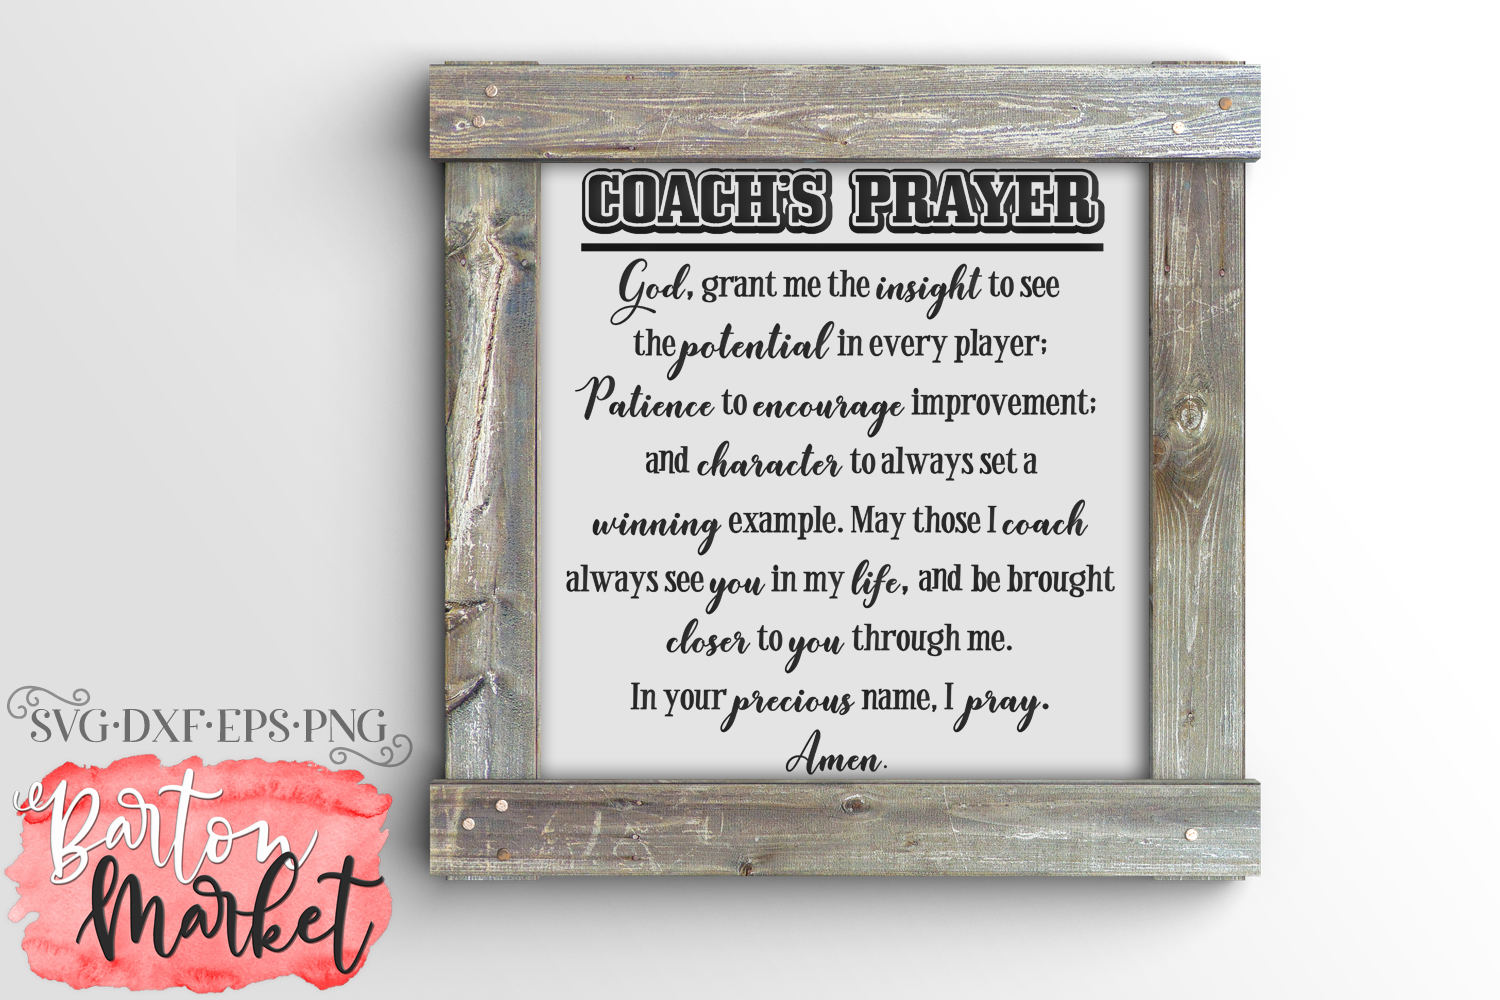 Coach's Prayer SVG DXF EPS PNG 1 example image 1